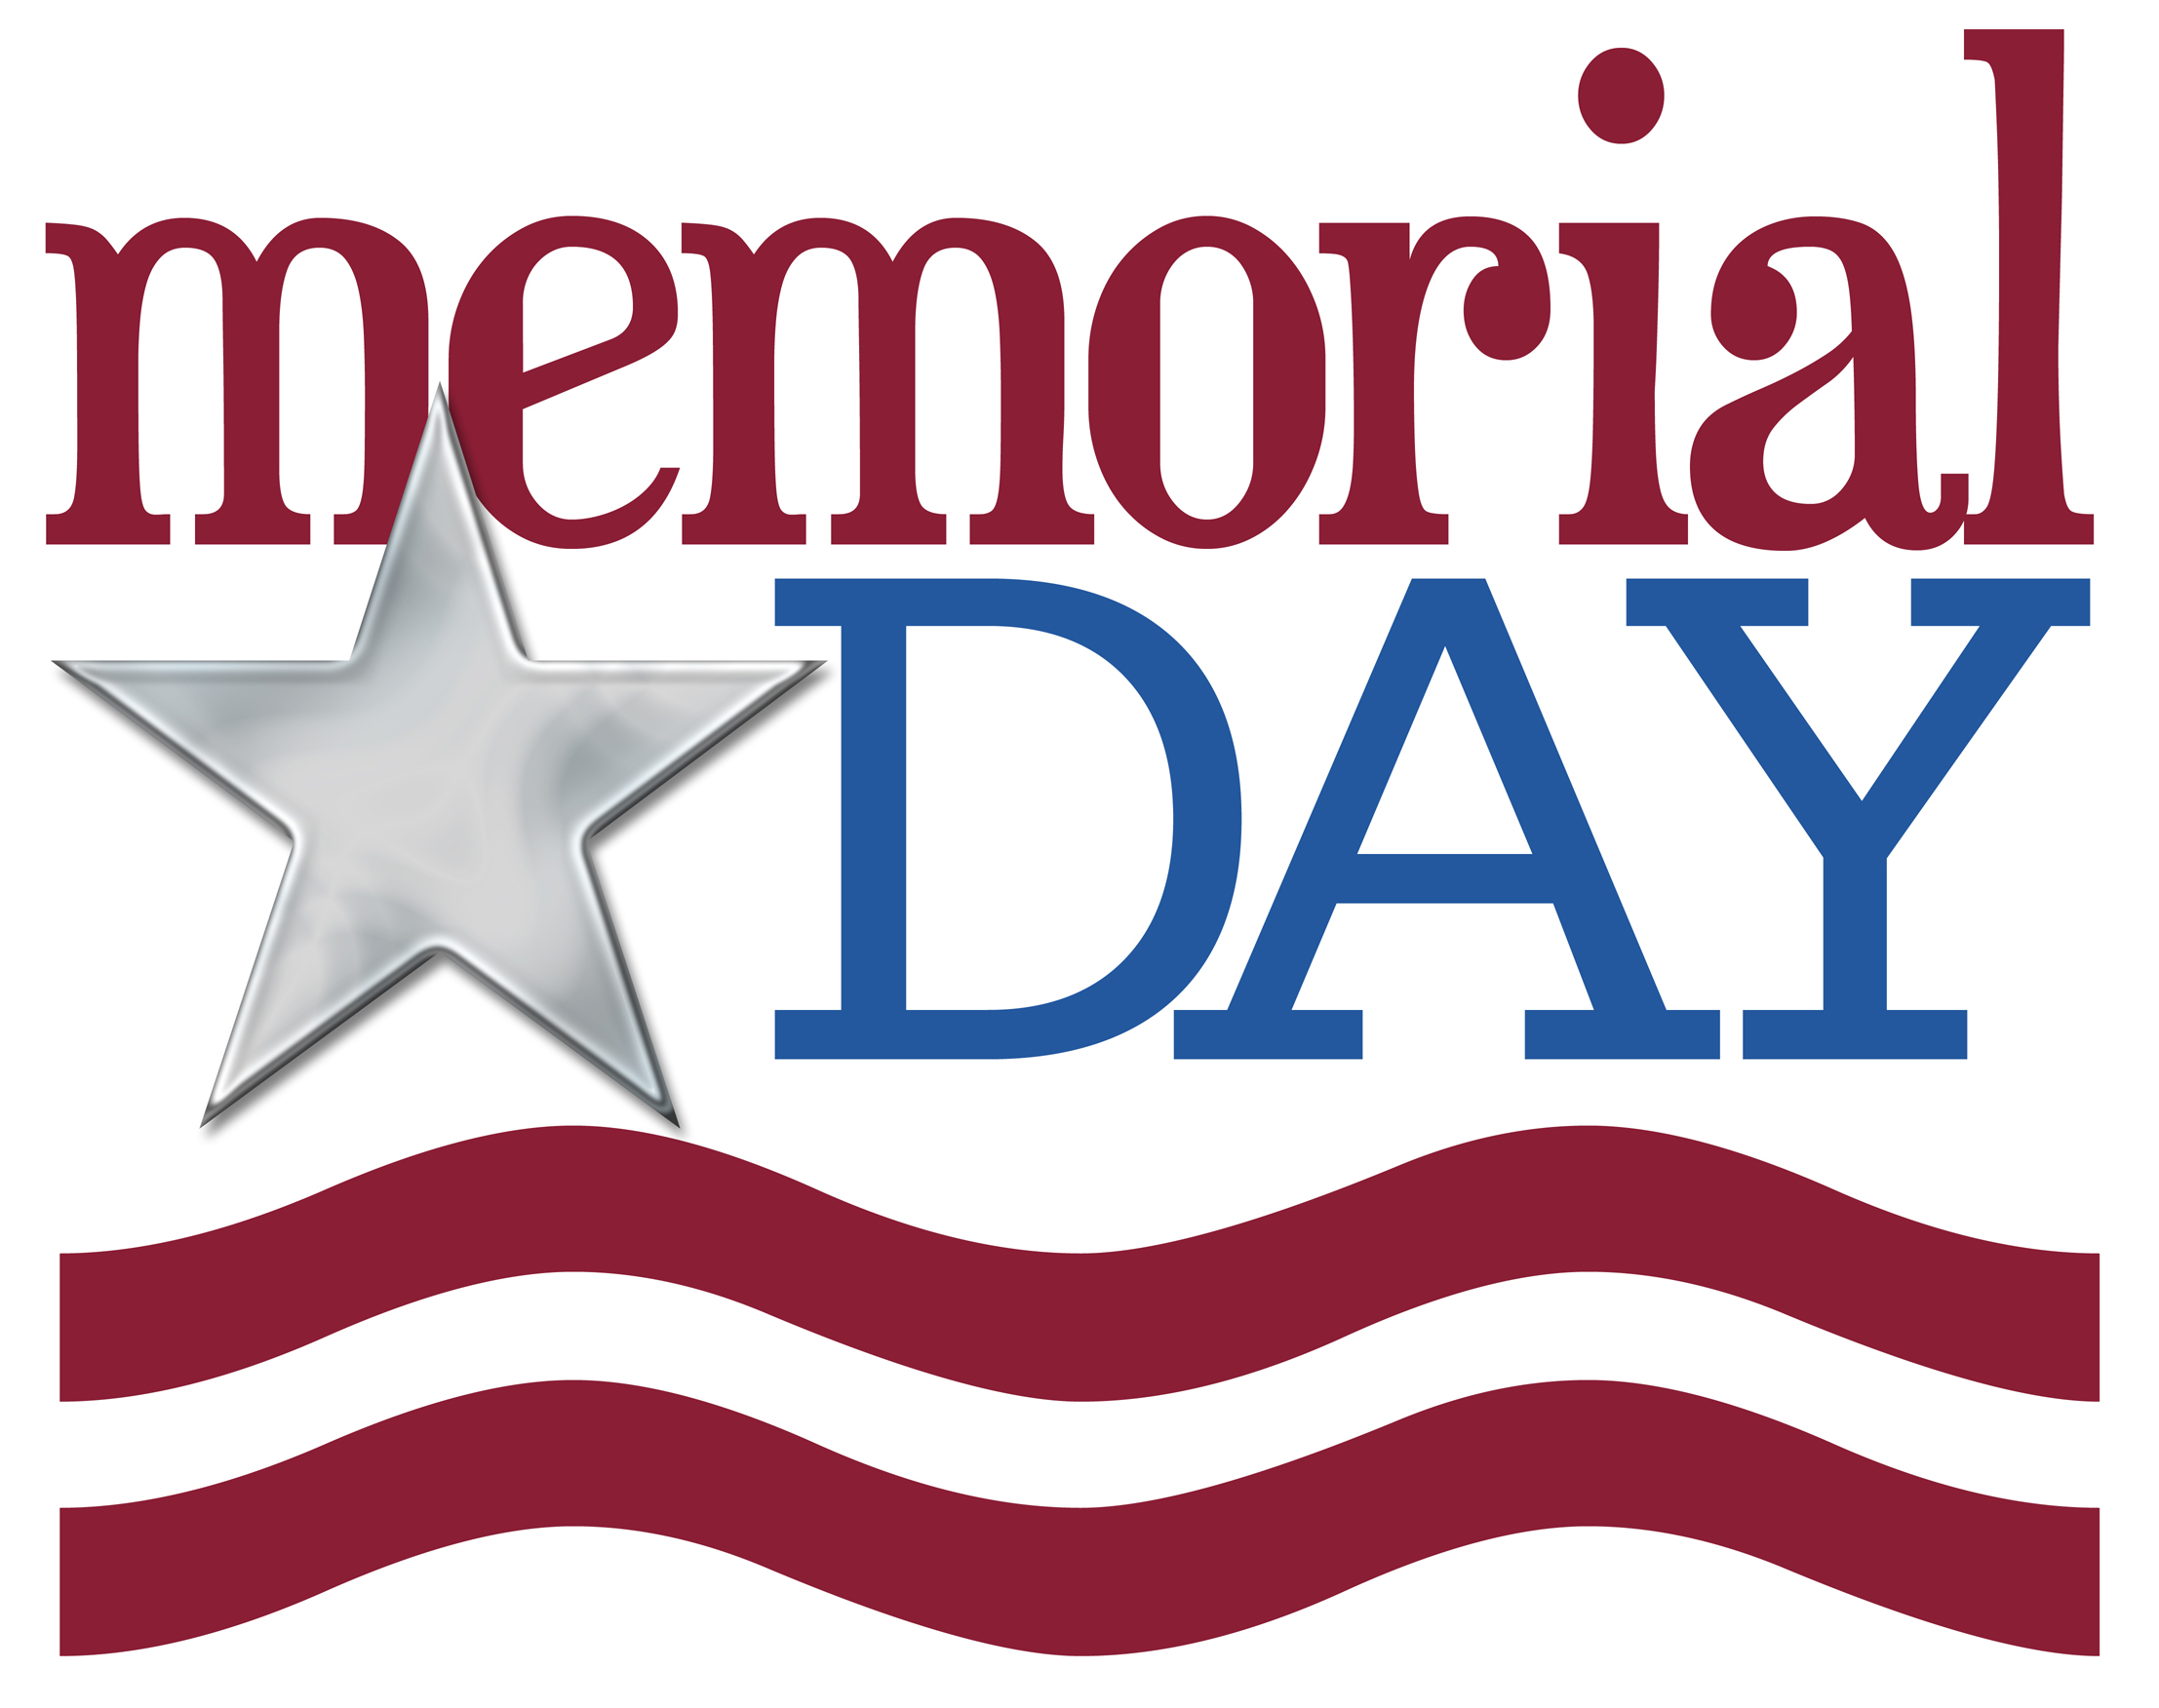 Memorial Day Graphic in Red & Blue with Silver Star